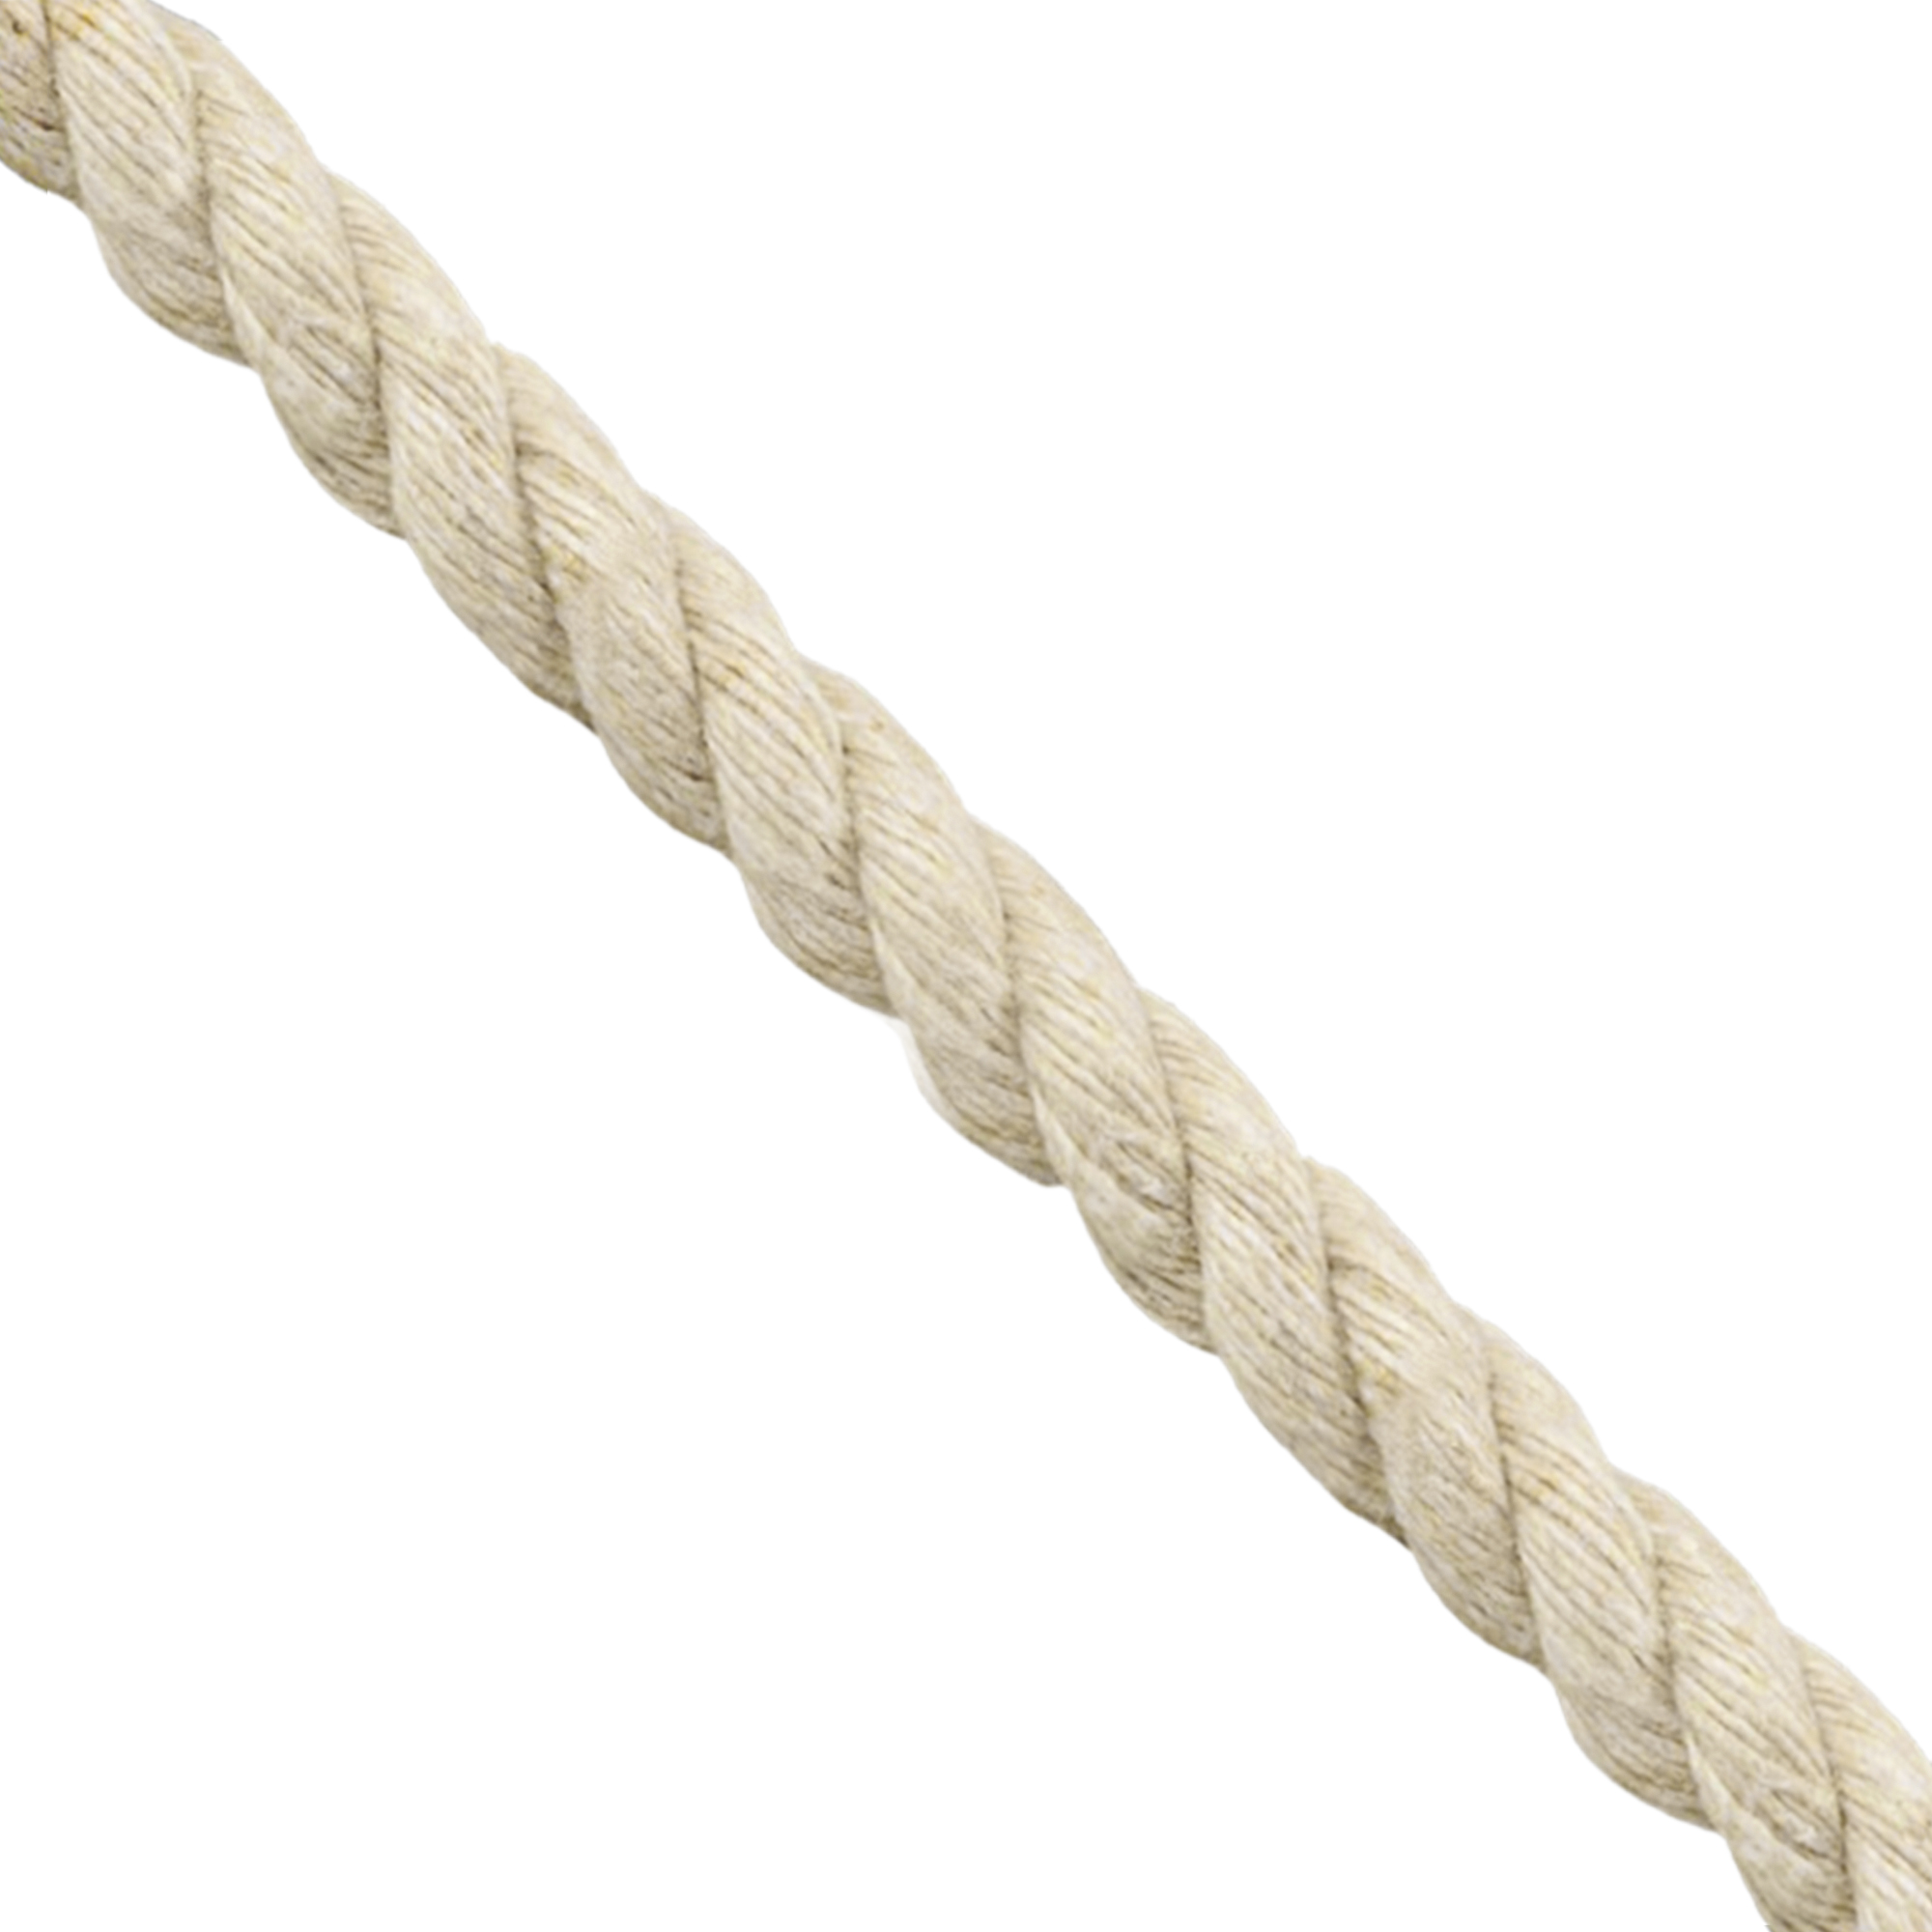 20mm White Cotton Rope Sold By Meter Buy Rope